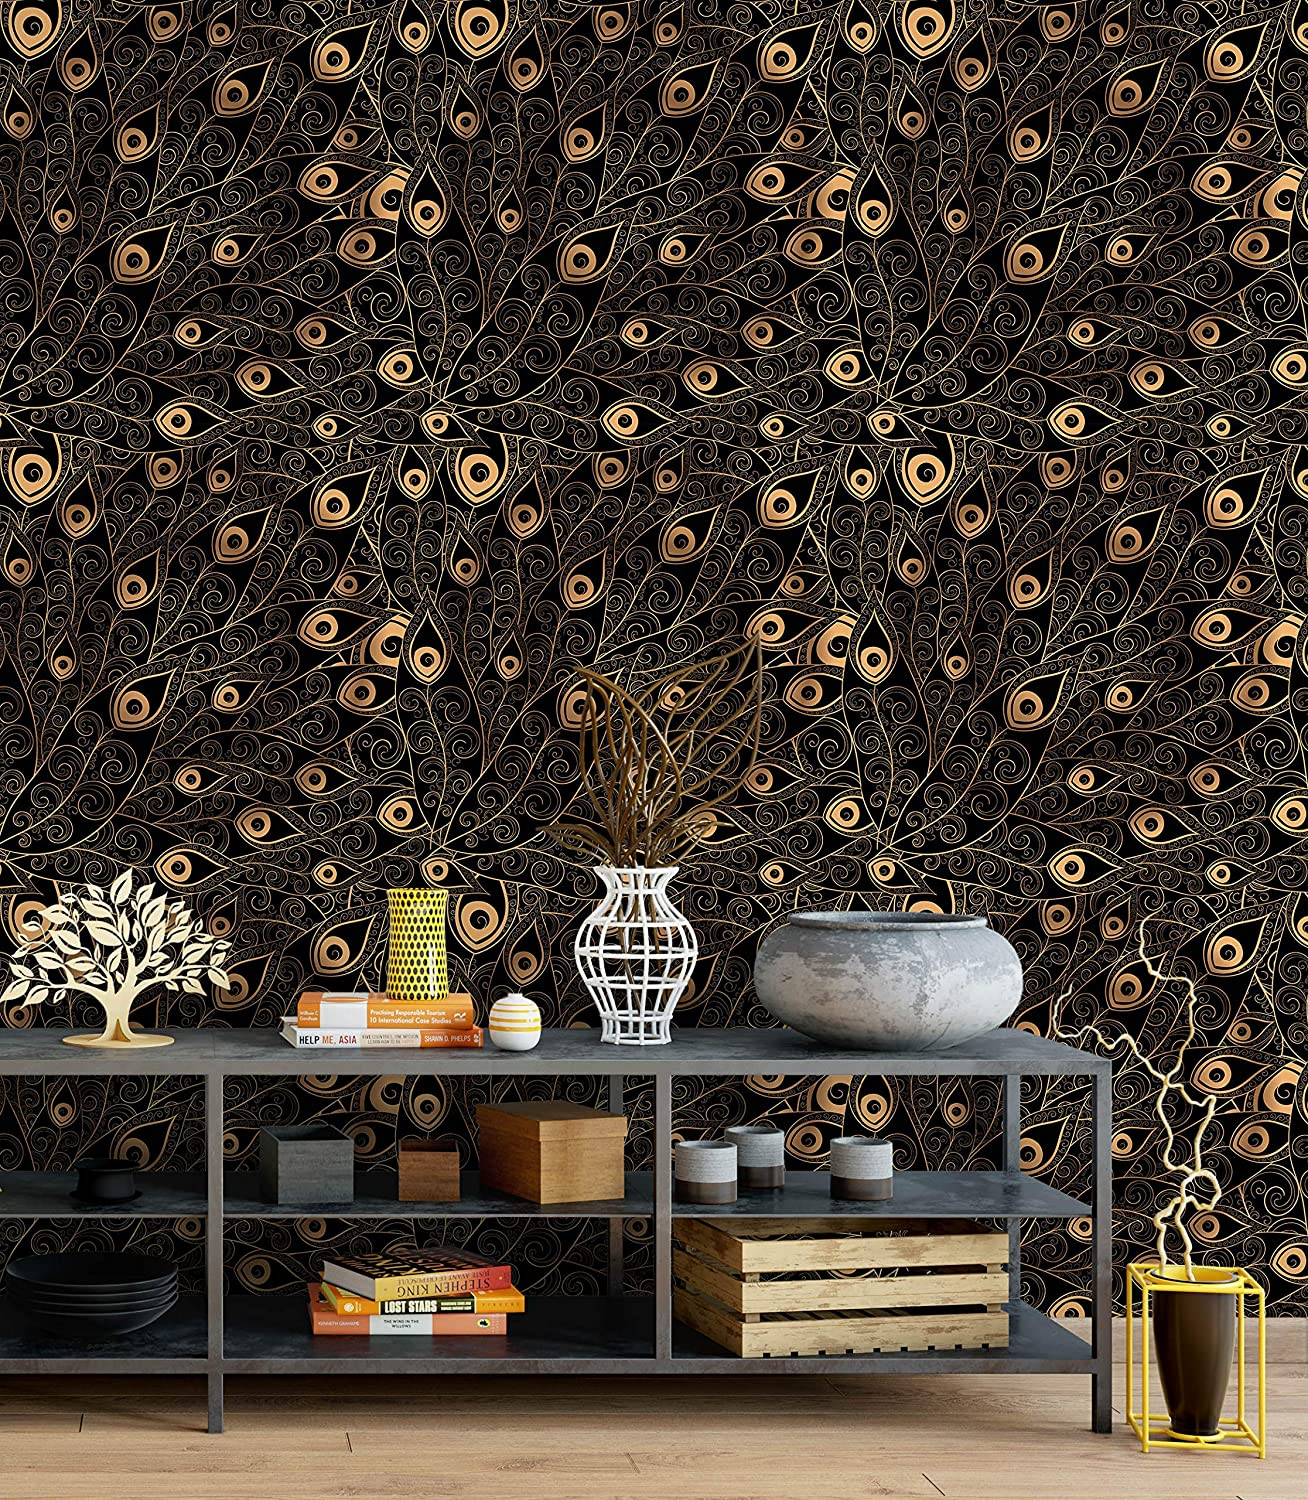 Amazon Com Costacover Self Adhesive Removable Wallpaper With Gold Black Peacock Feathers Temporary Peel And Stick Wall Mural Wall Decor For Home Cc181 Handmade